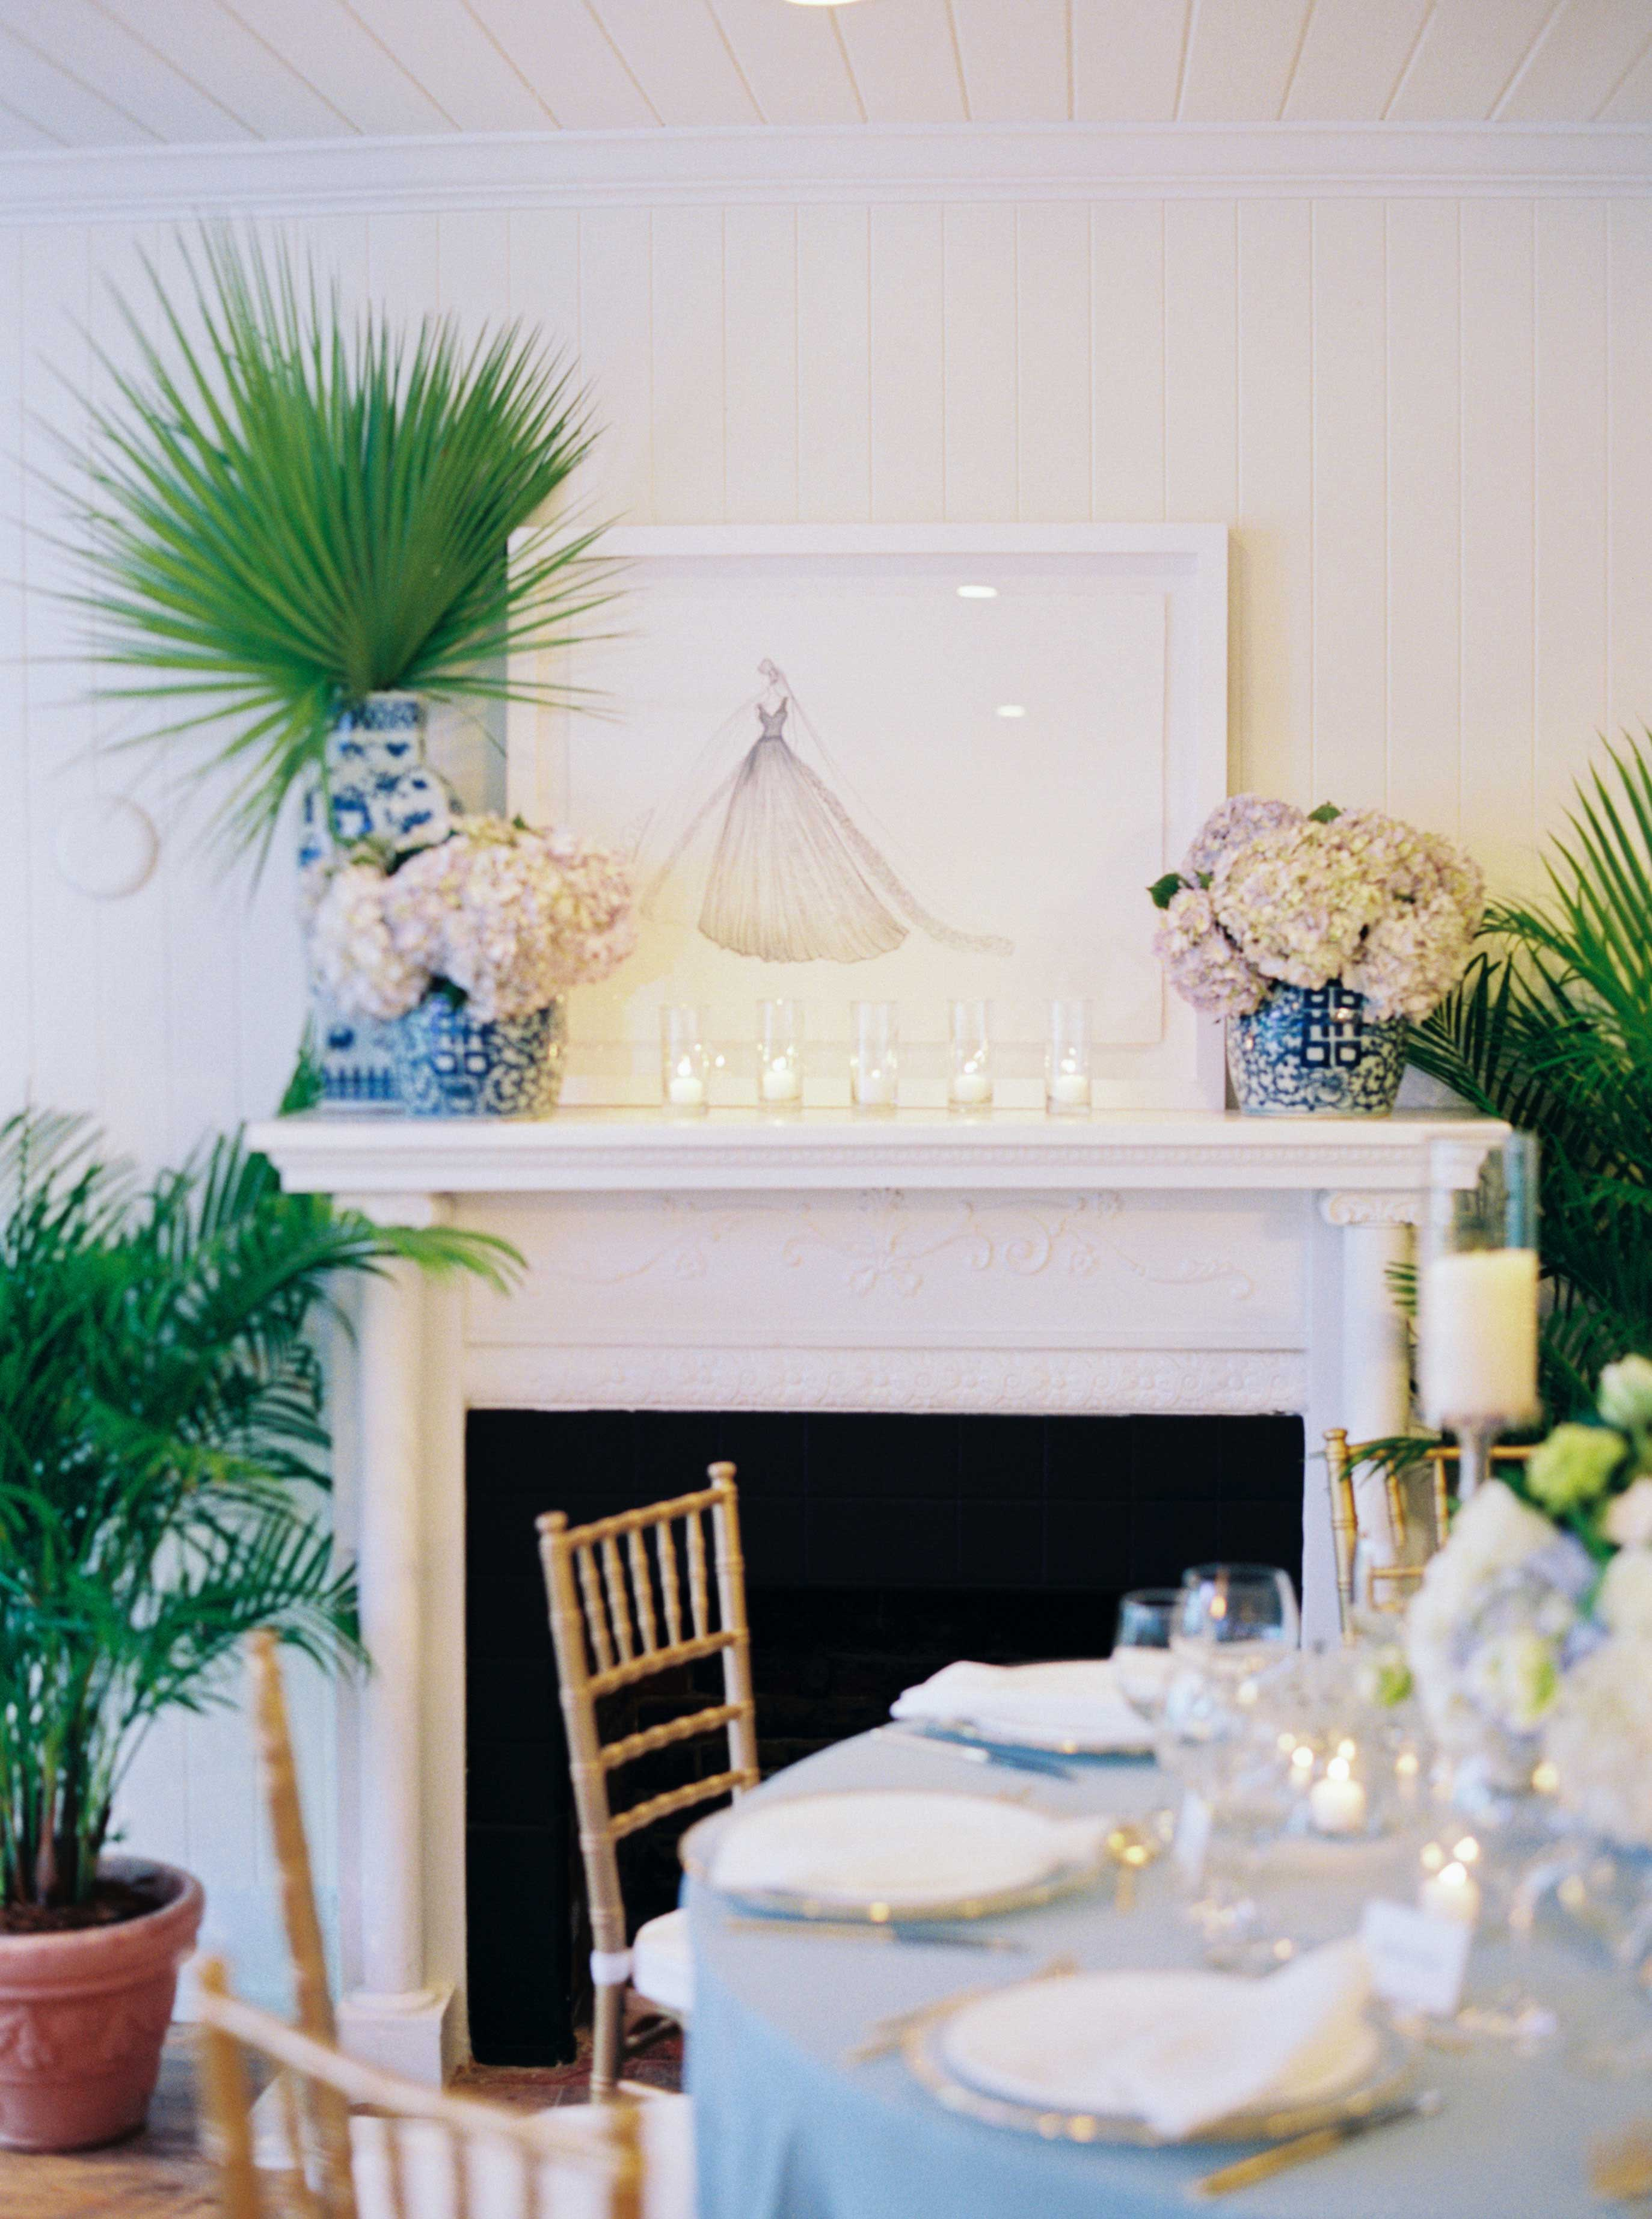 Wedding reception intimate fireplace sketch blue and white ginger jar vase chinoiserie decor